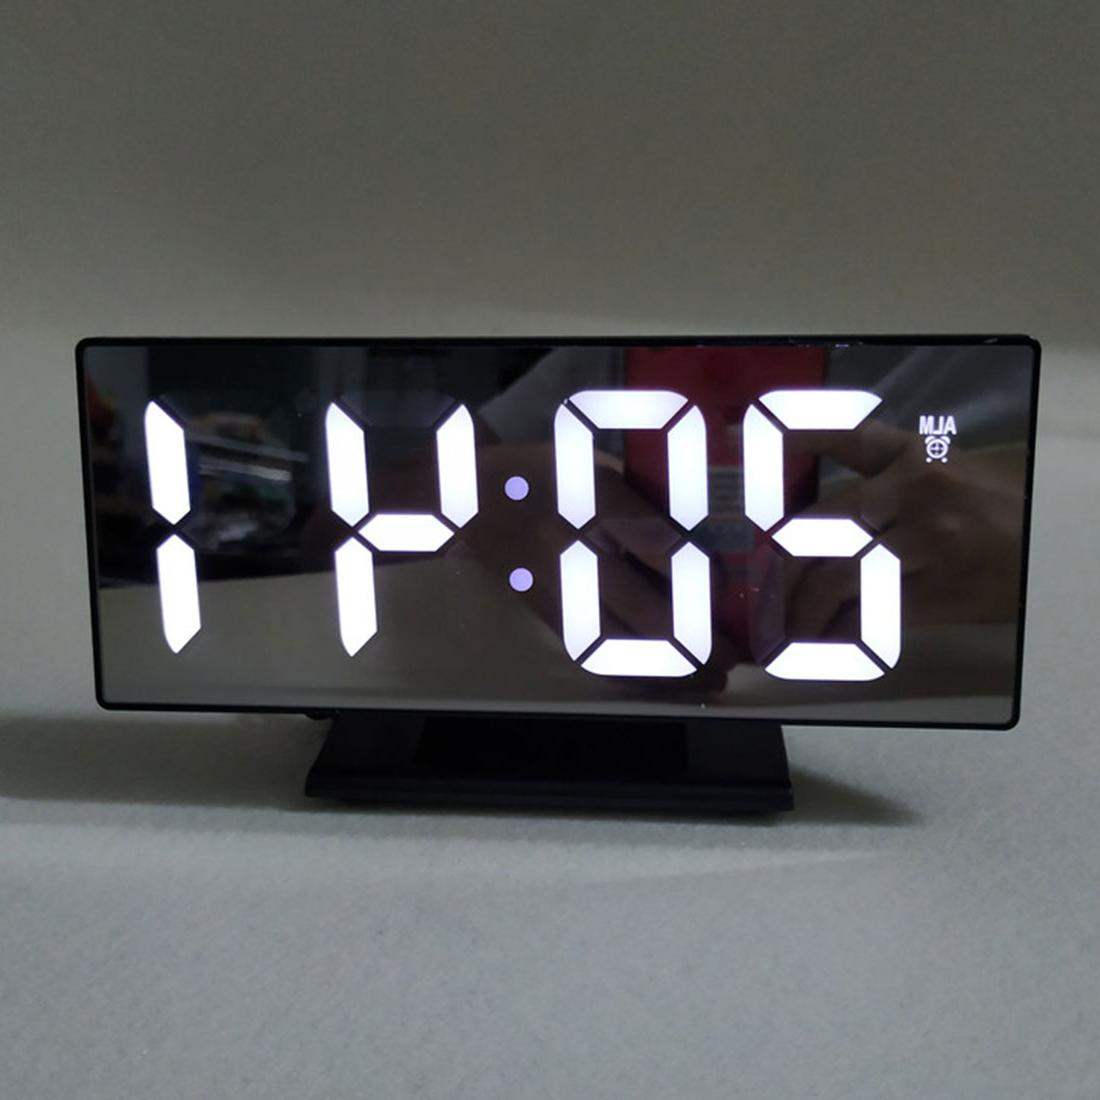 Multifunction LED Display <font><b>Clock</b></font> Snooze Table Desktop <font><b>USB</b></font>